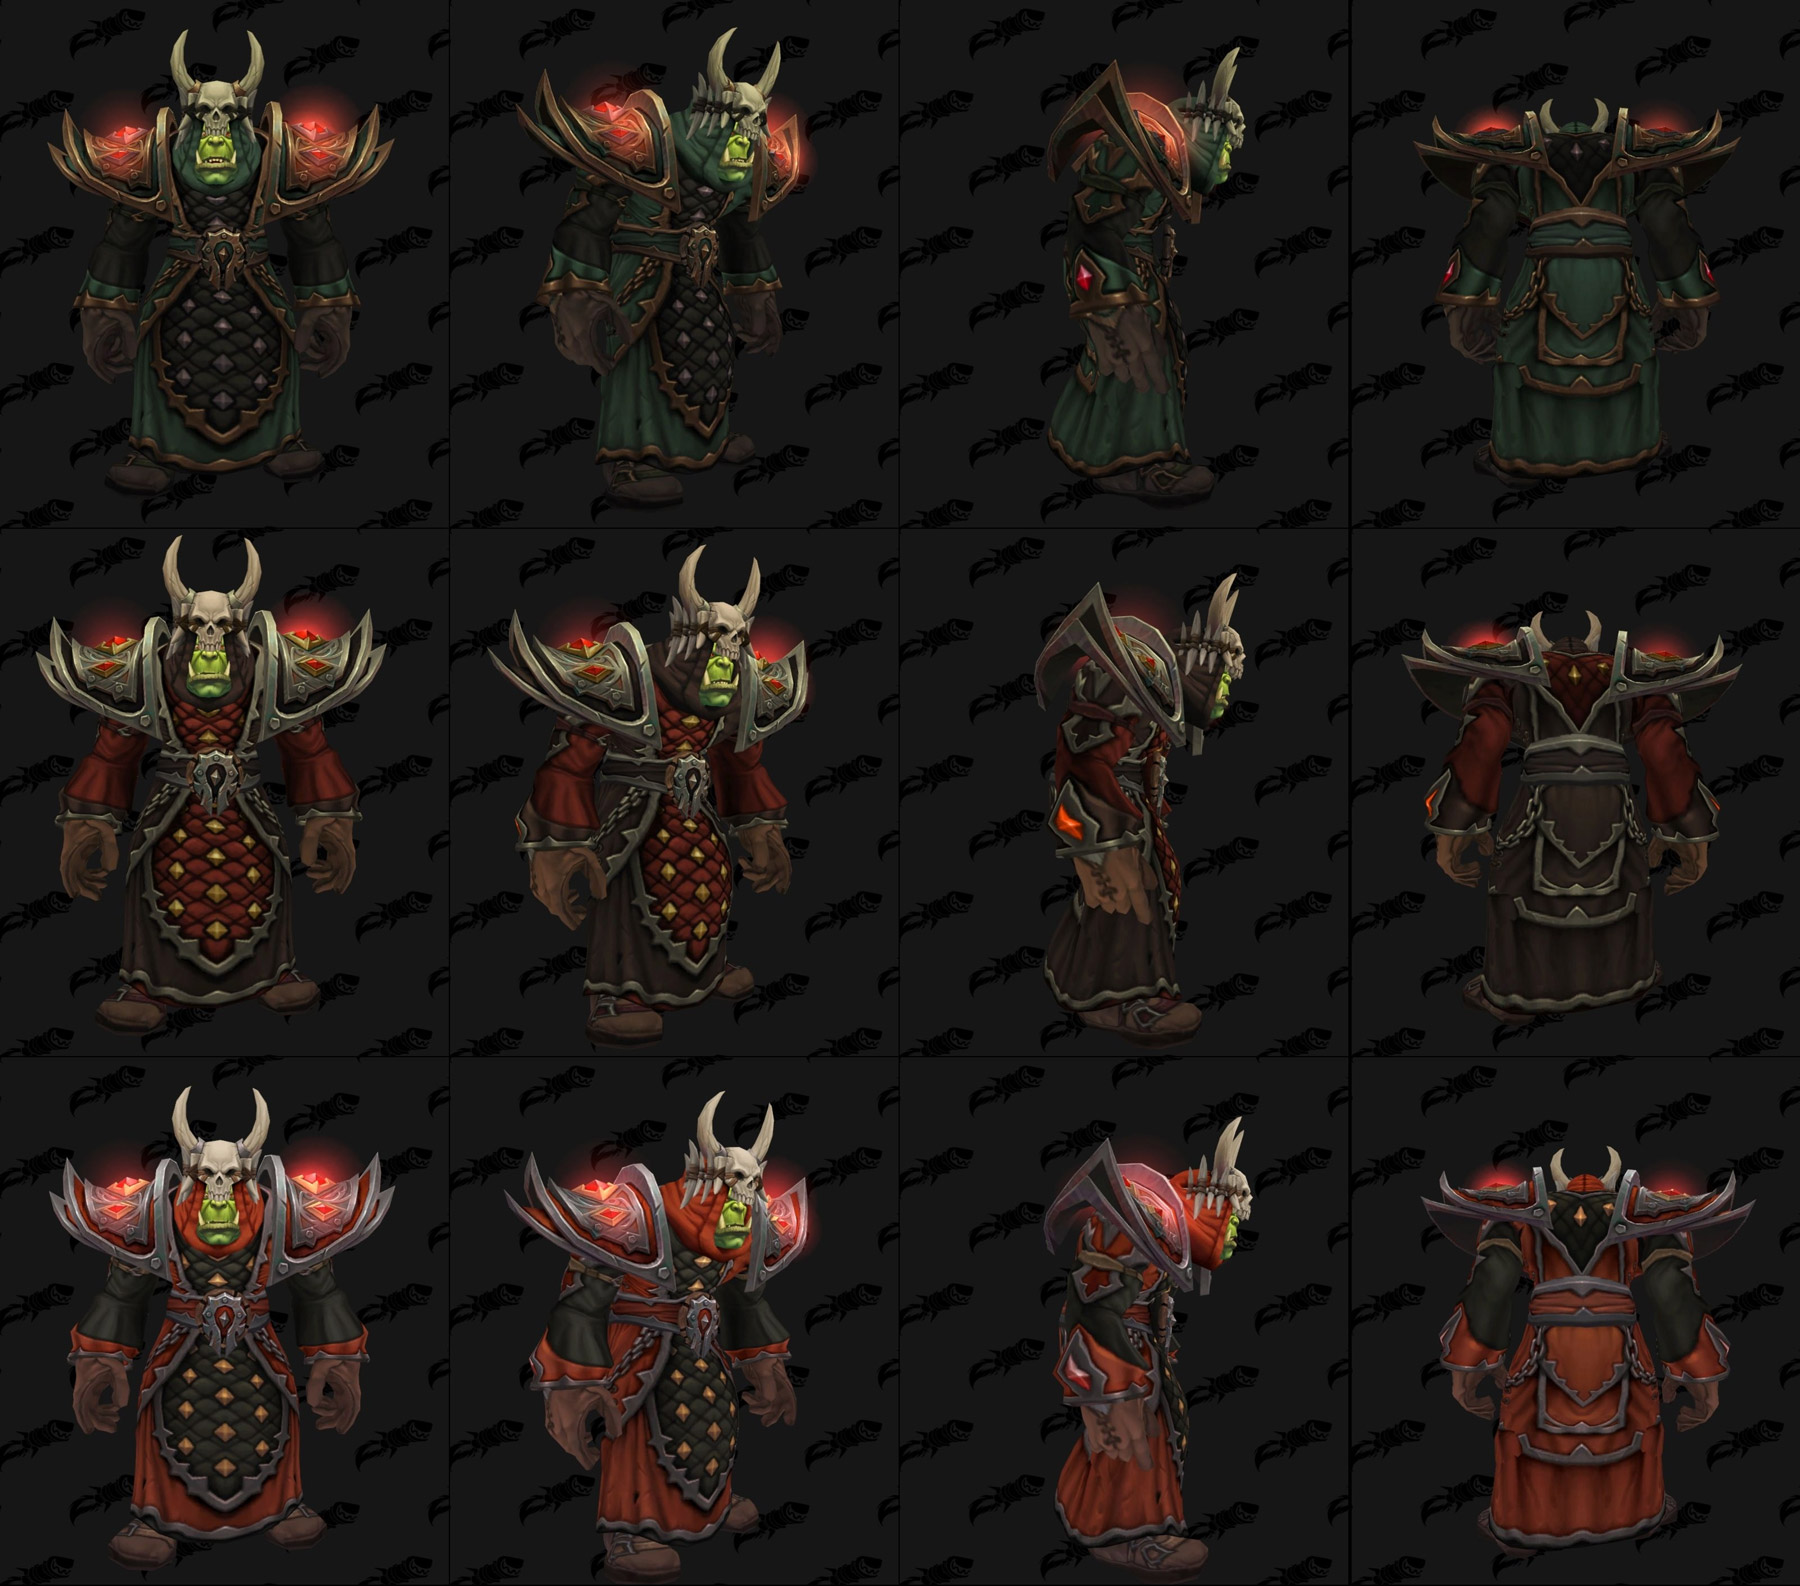 Ensembles Front de guerre (Horde) en tissu - Tier 2 - Battle for Azeroth